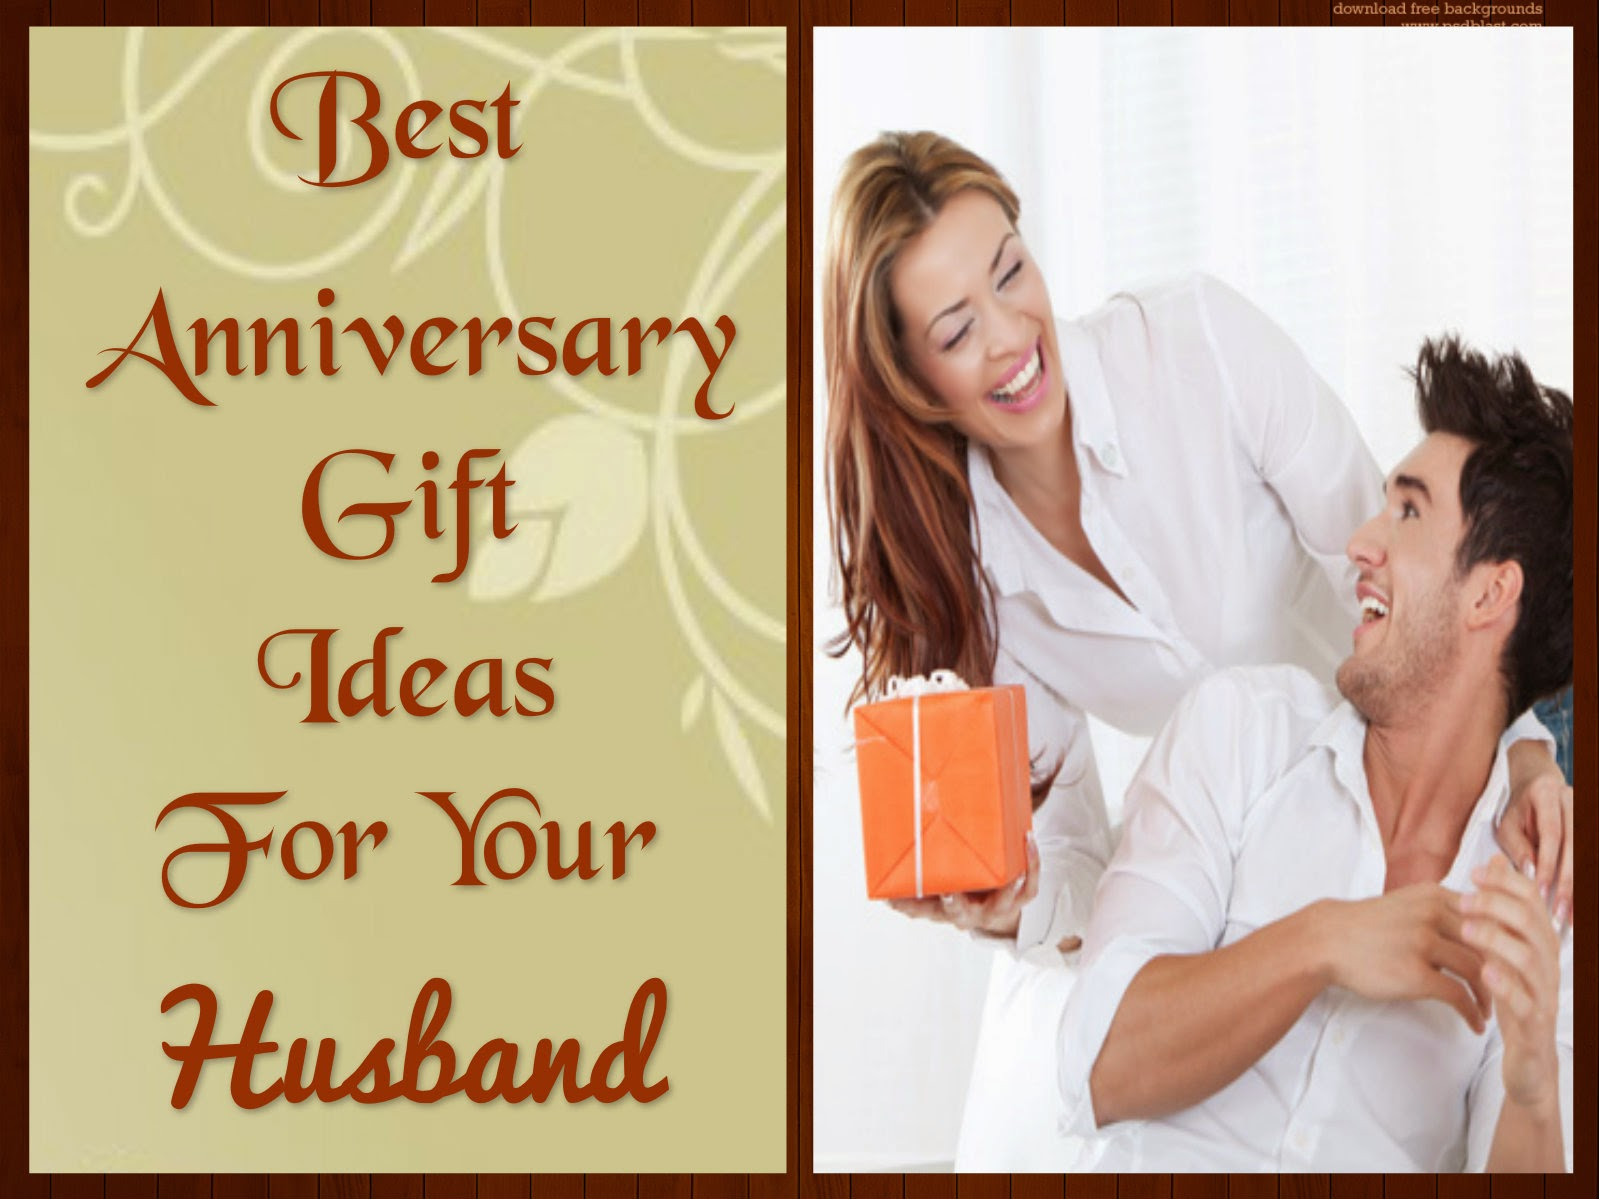 Wedding Anniversary Gifts: Best Anniversary Gift Ideas For